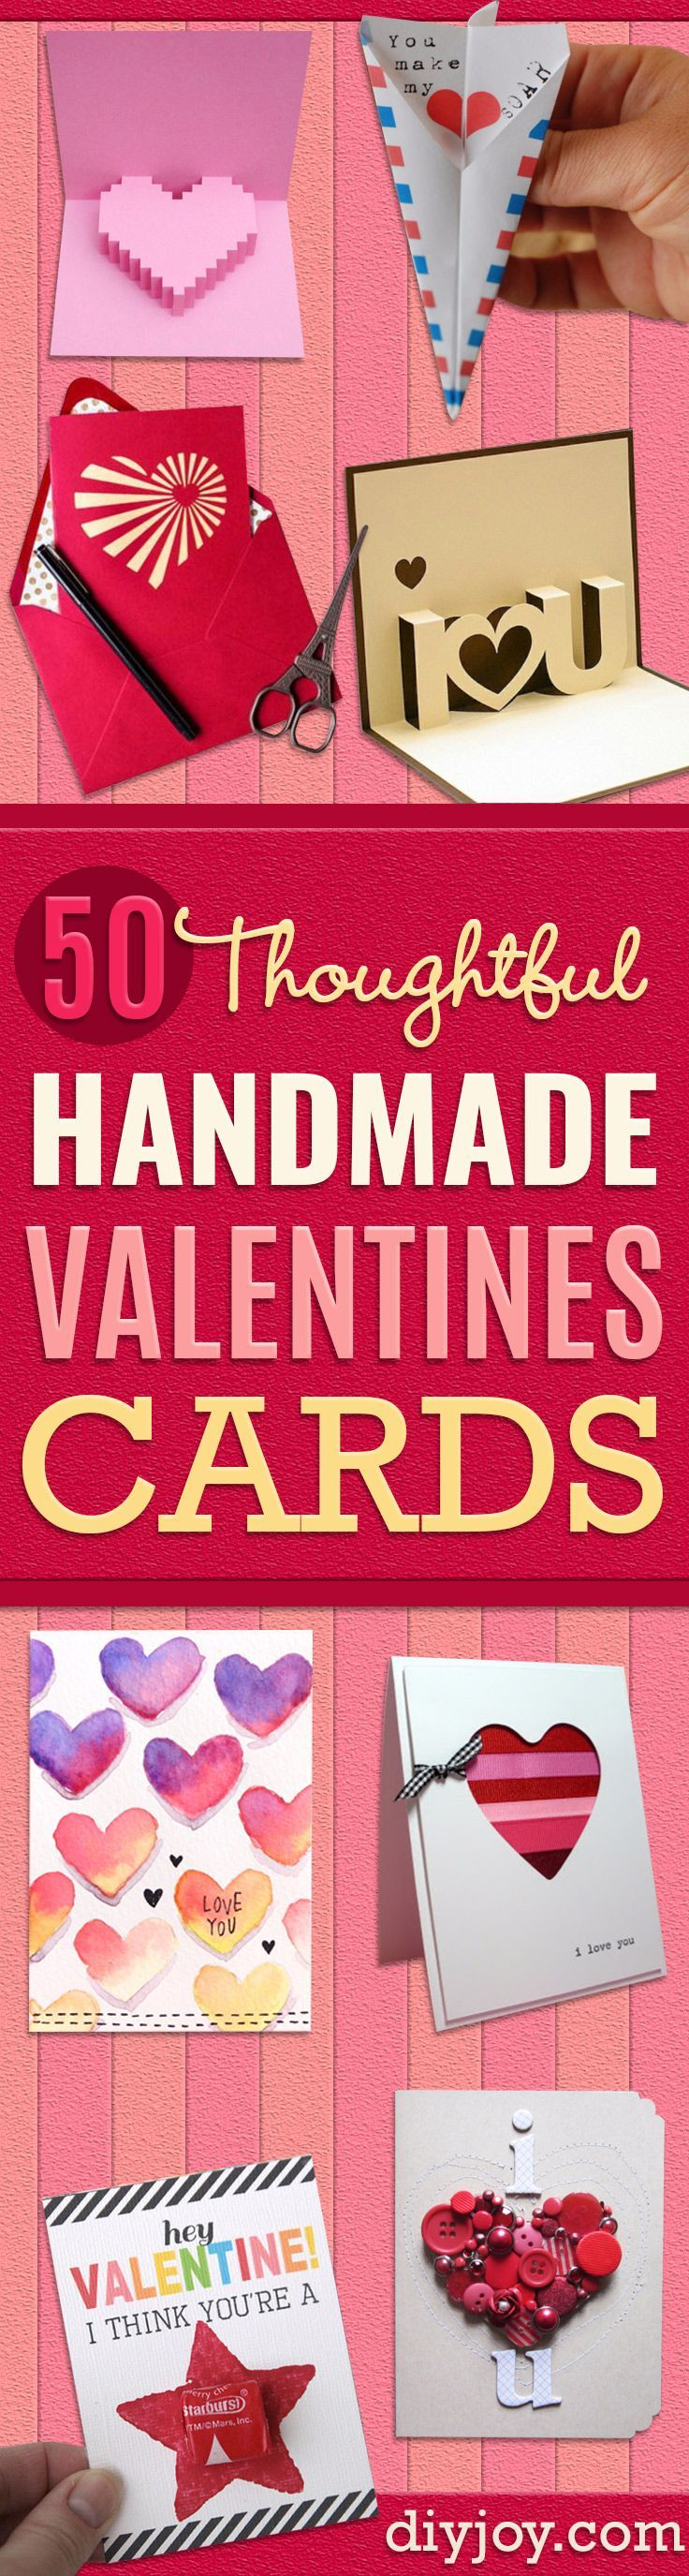 50 thoughtful handmade valentines cards - Creative Valentines Gifts For Her